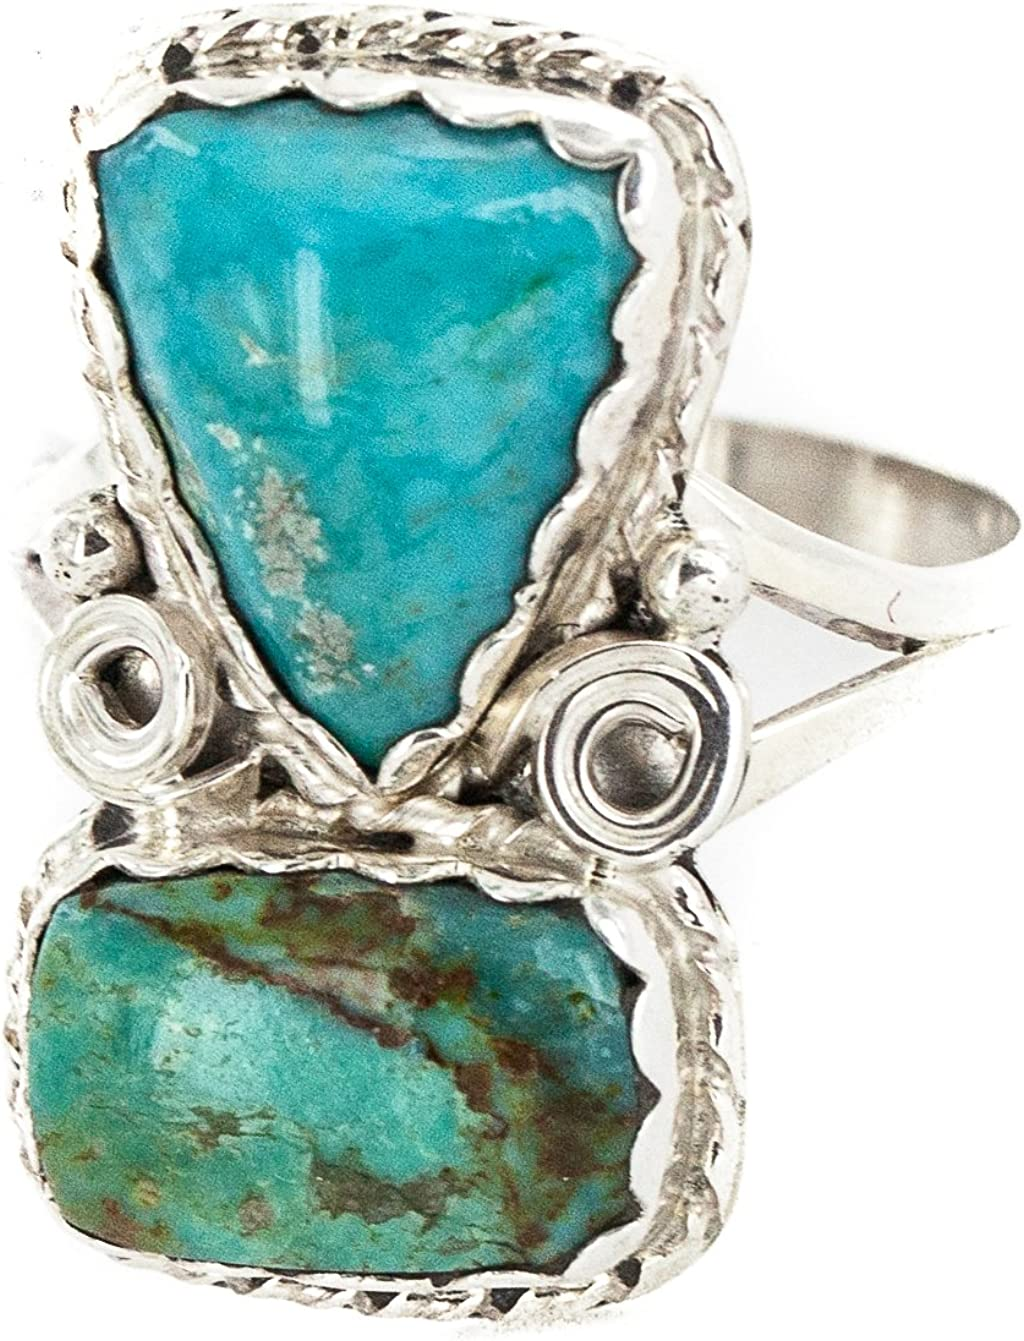 $270Tag Silver Certified Authentic Navajo Turquoise Native American Ring 18187-8 Made by Loma Siiva